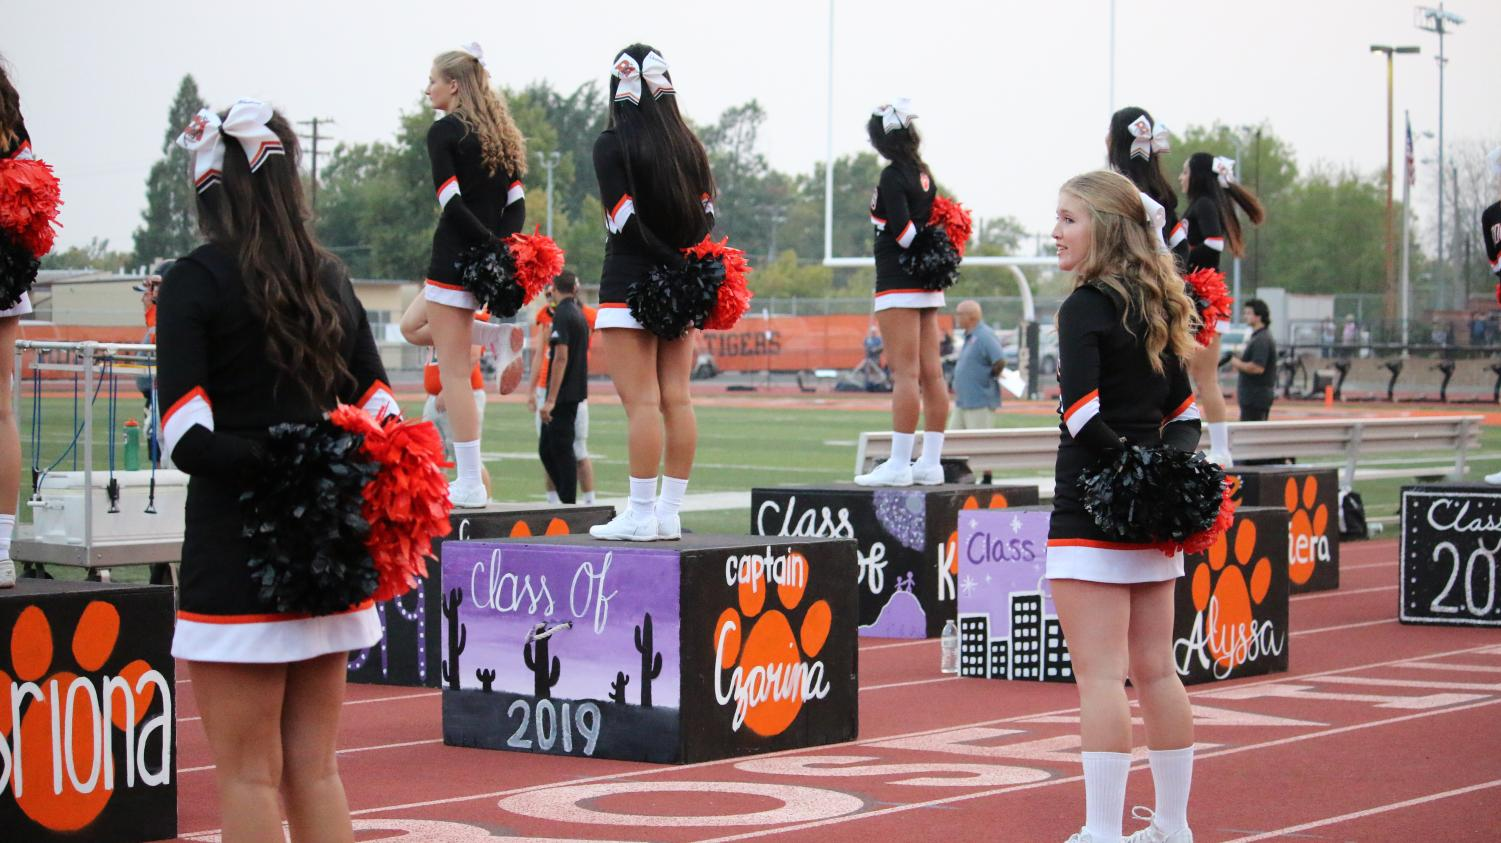 Above, the 2018-19 cheer team at the first home game of the year. The team began the year coachless after 22-year-old cheer coach Gabi Vega was arrested for DUI with students in the vehicle. They have since replaced Vega after two months without a coach.